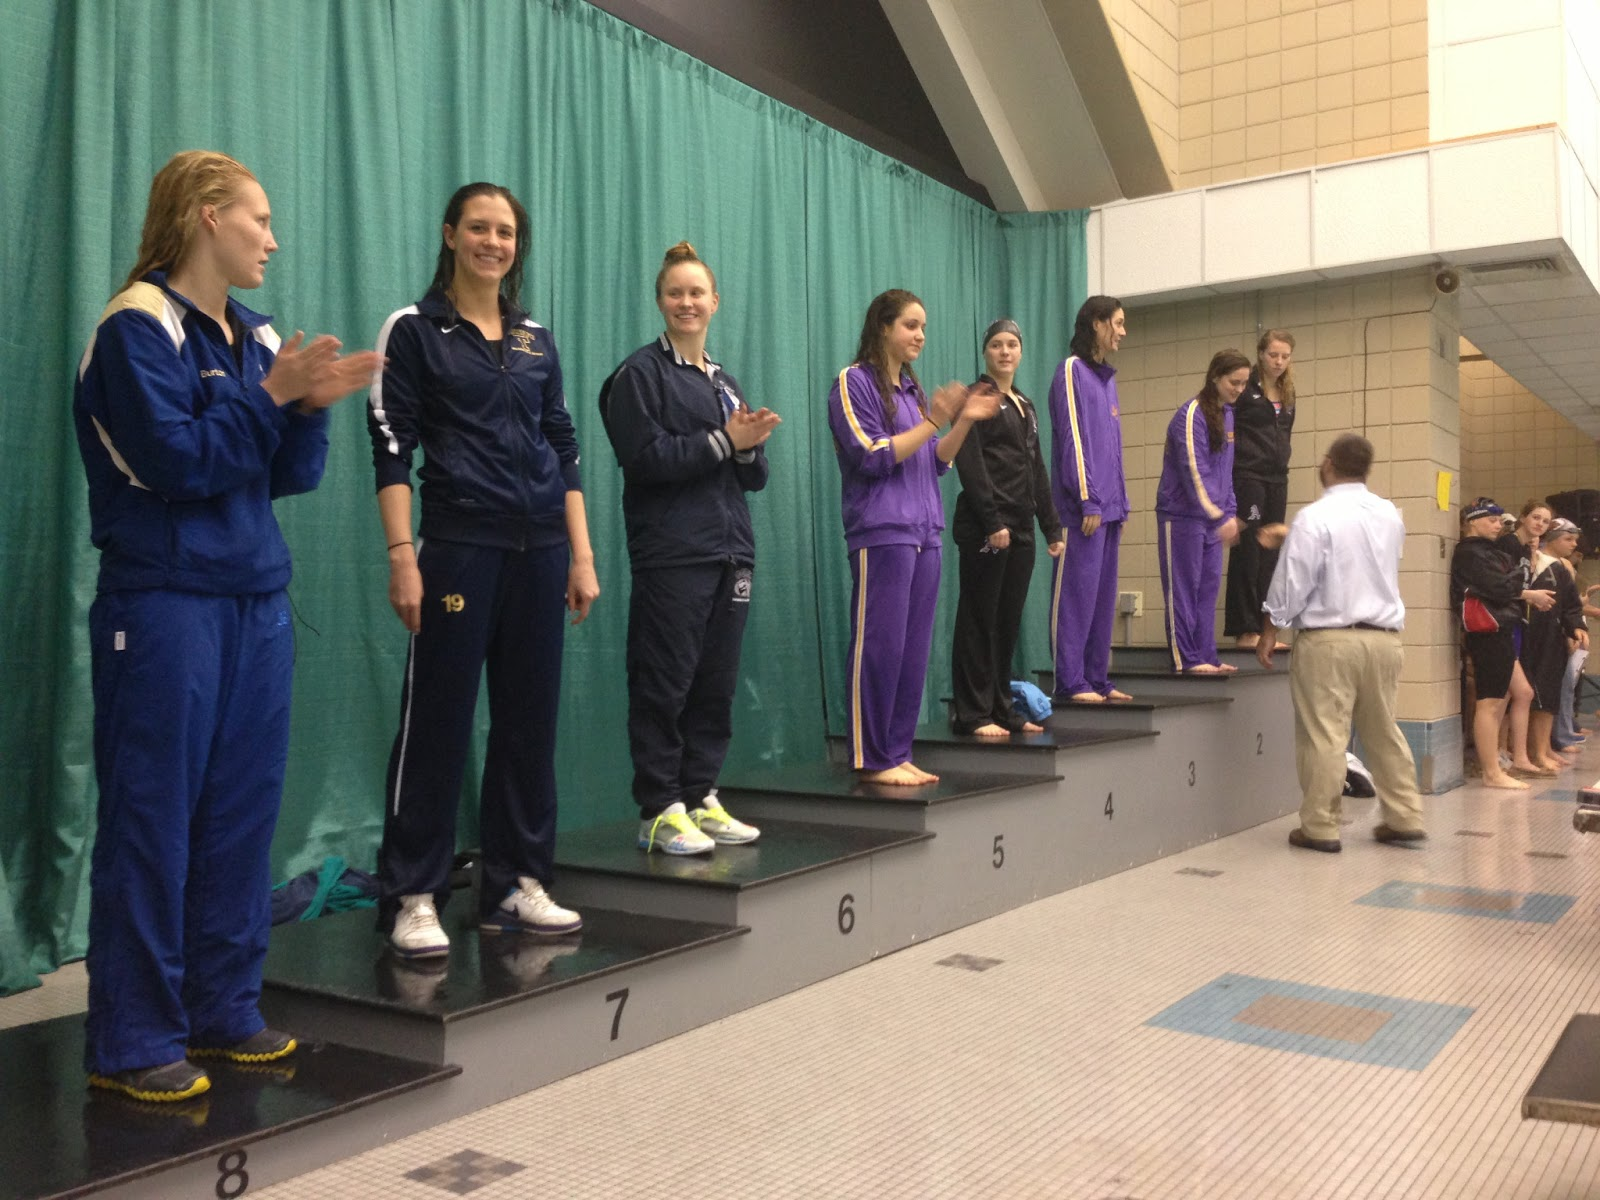 Trinity College Swimming Diving Nescac 39 S Day 2 New 100 Fly 100 Breast 200 Free 800 Free